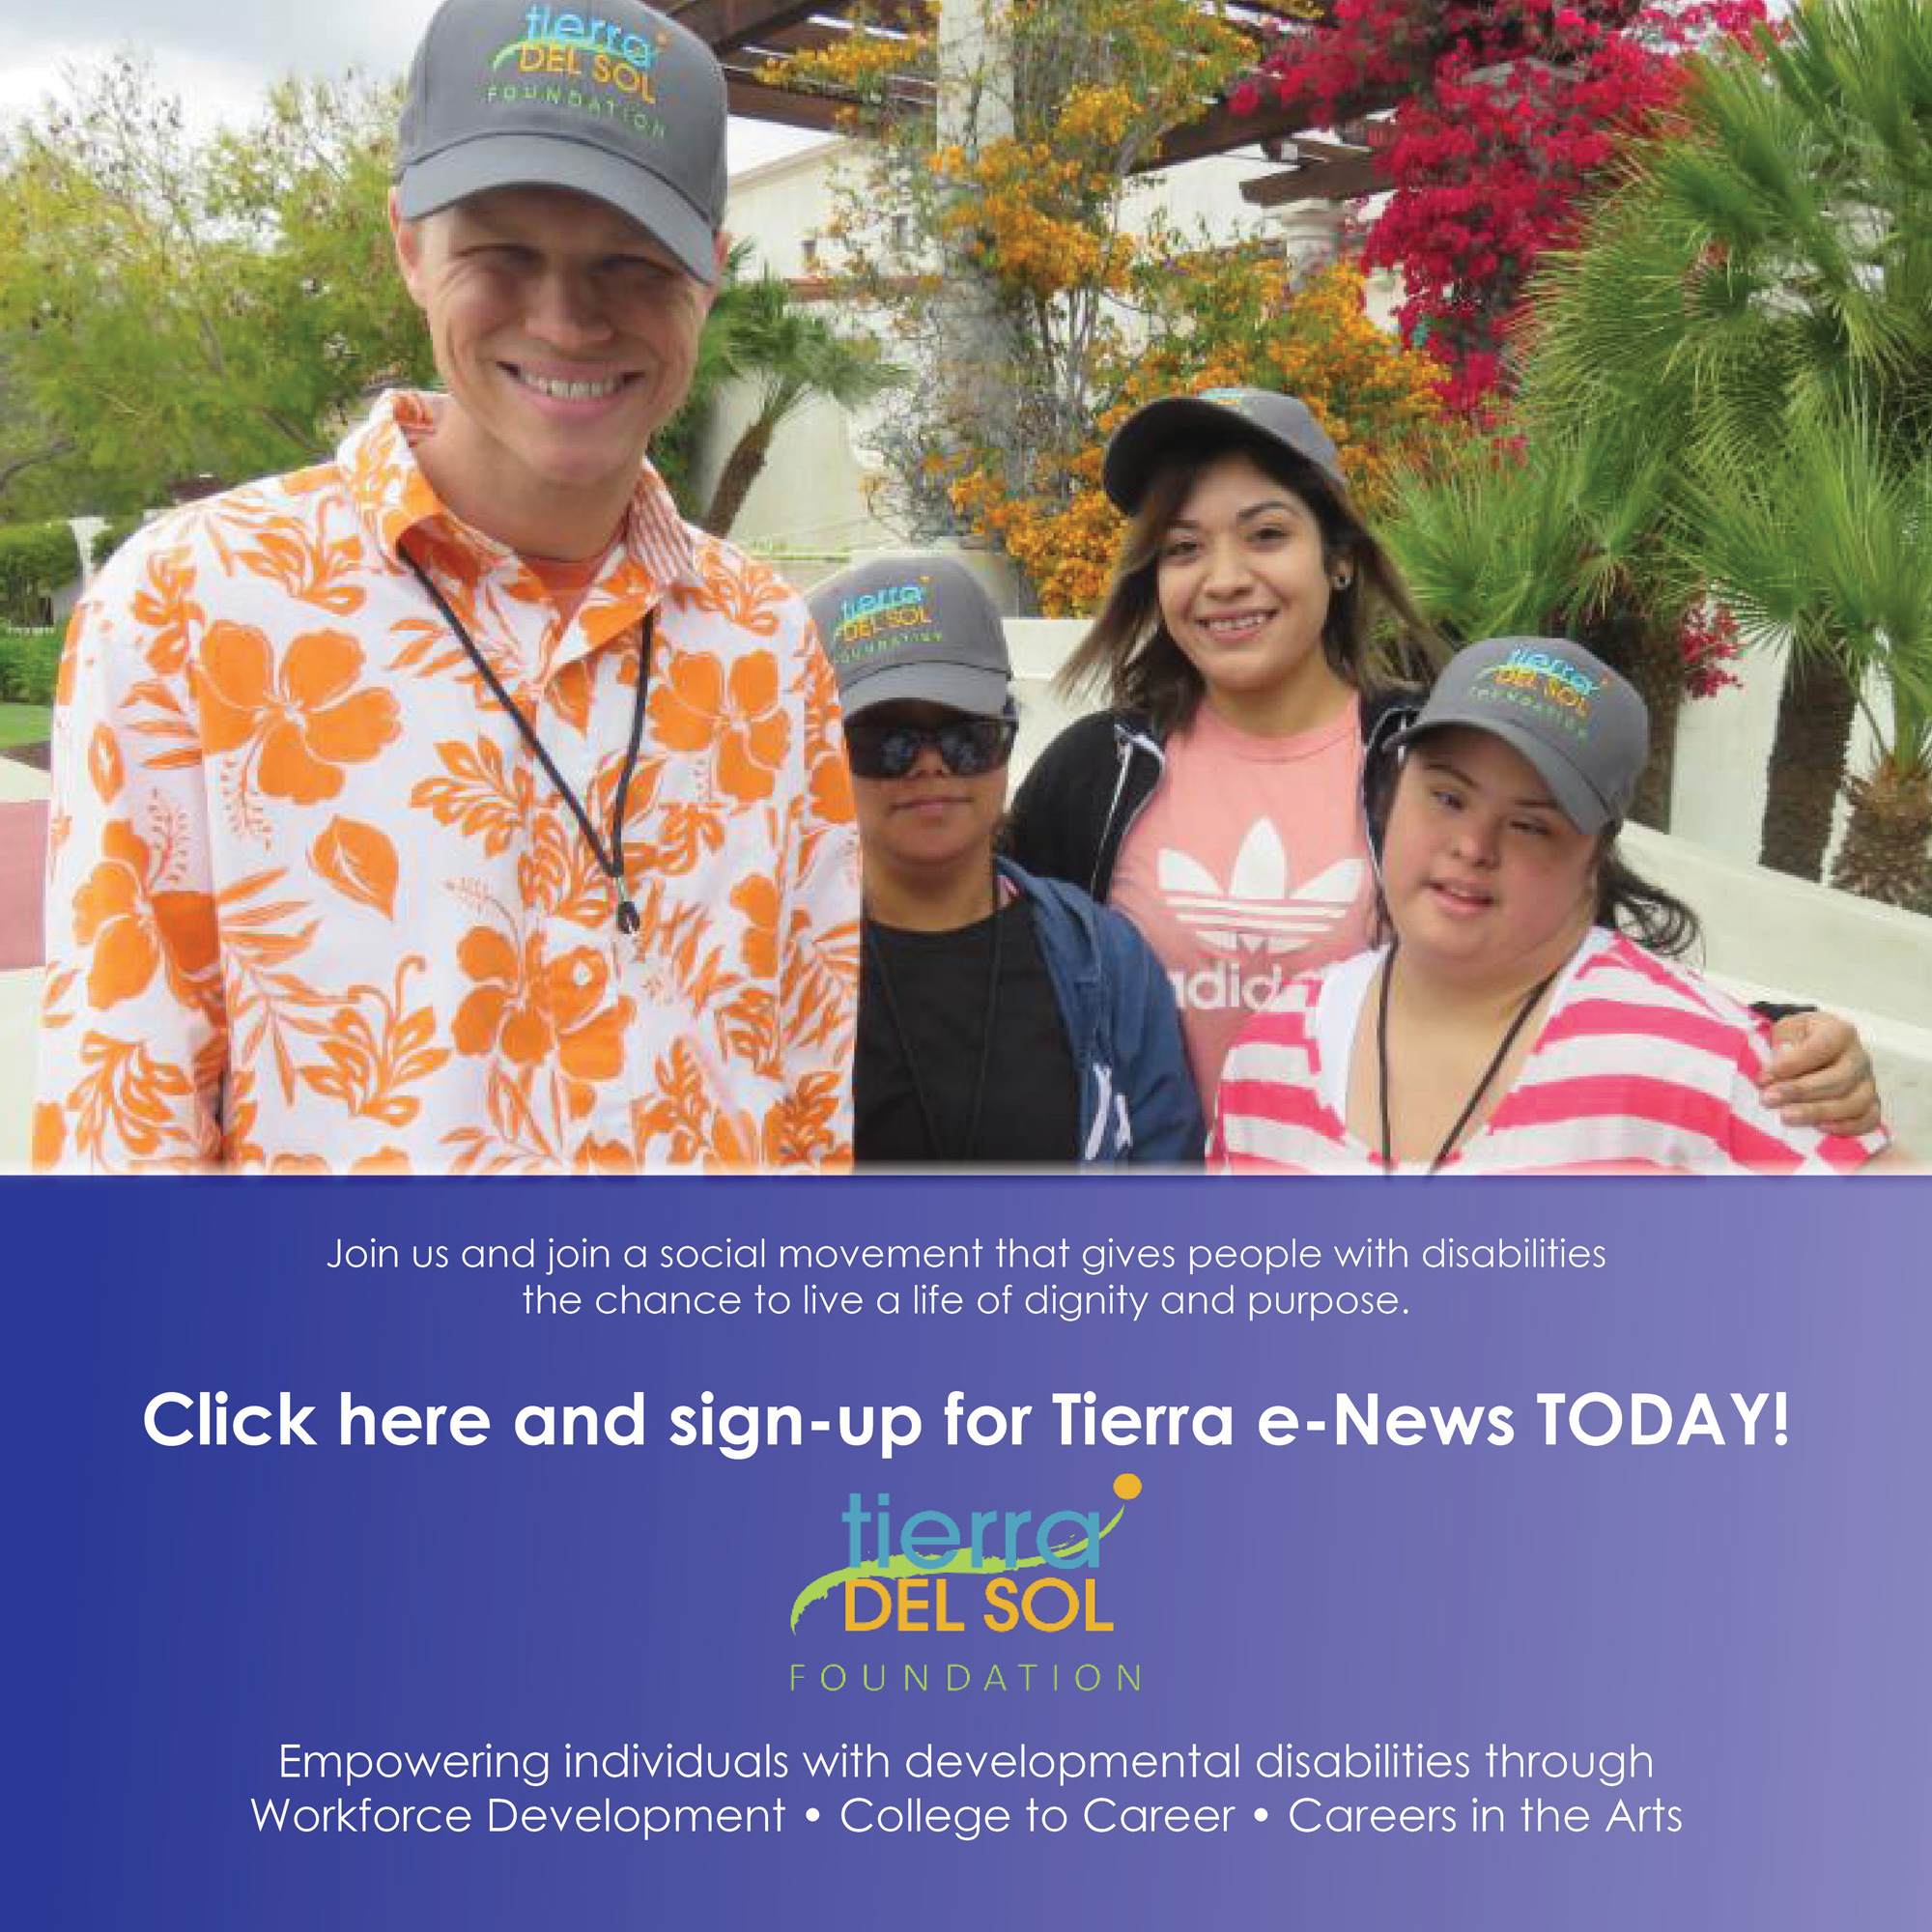 Click here and sign-up for Tierra e-News TODAY!